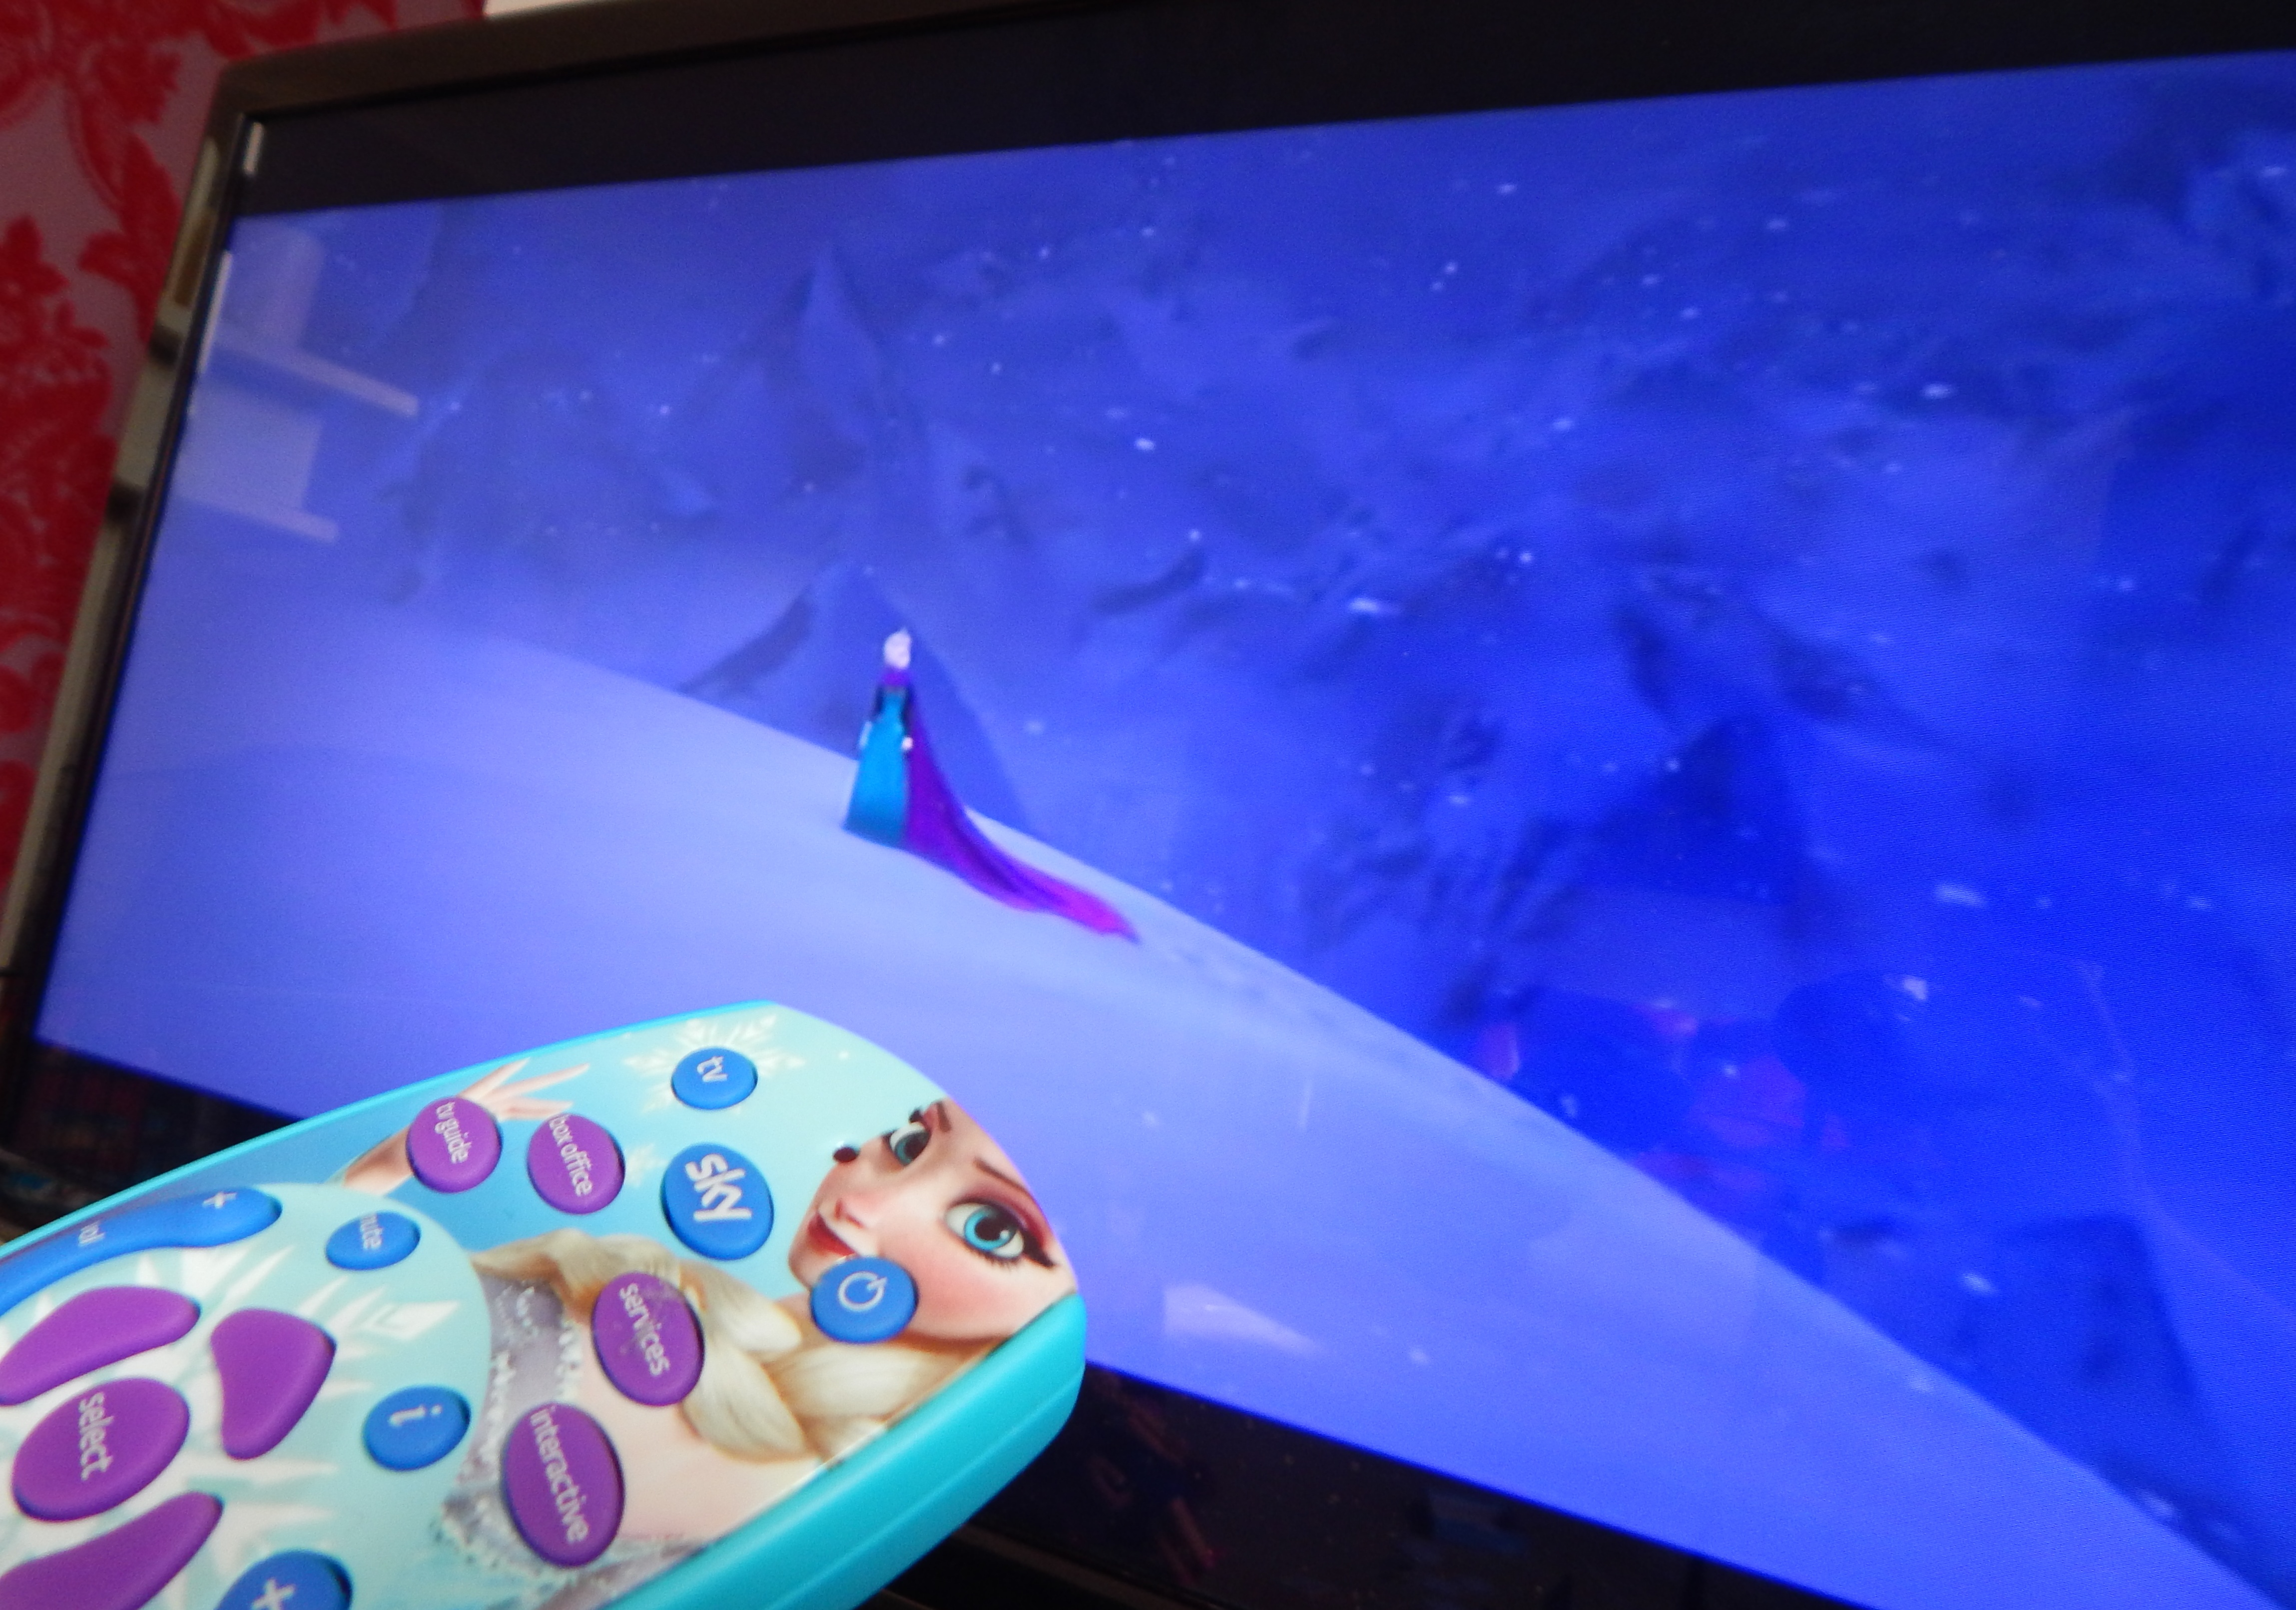 Sky Hd Disney Frozen Remote